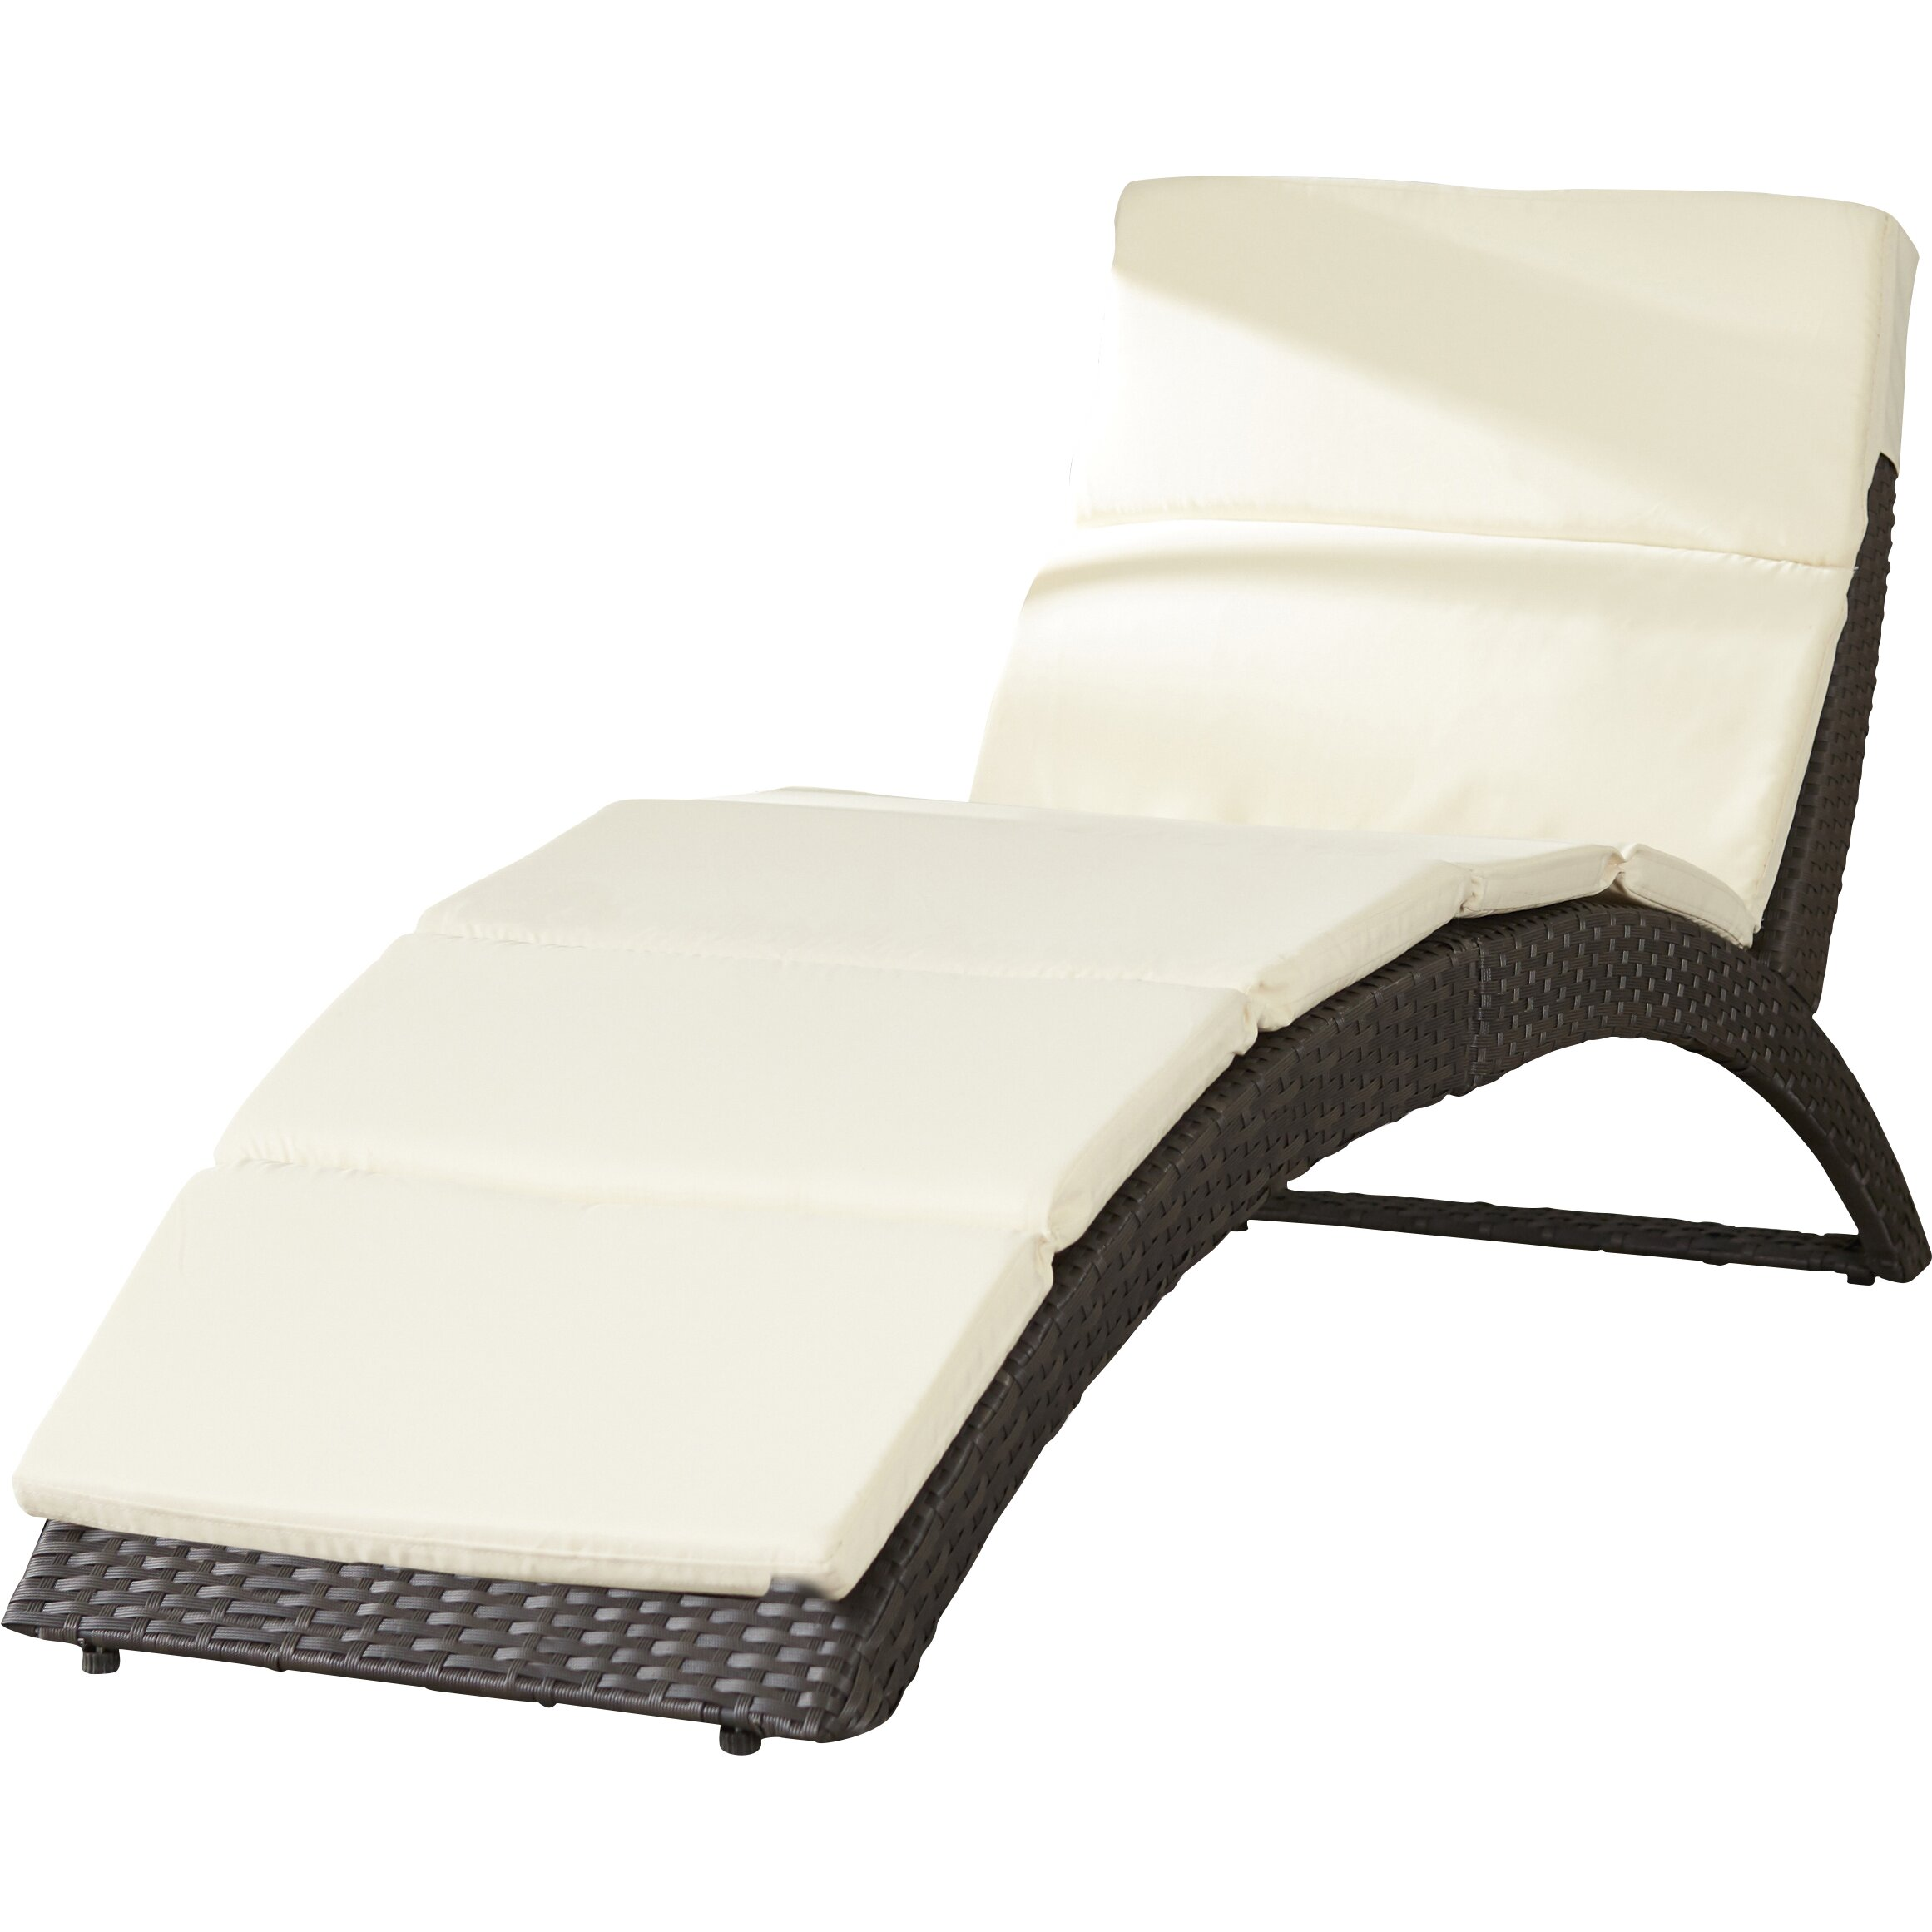 Wade logan johnathan chaise lounge with cushion reviews for Buy chaise lounge cushion